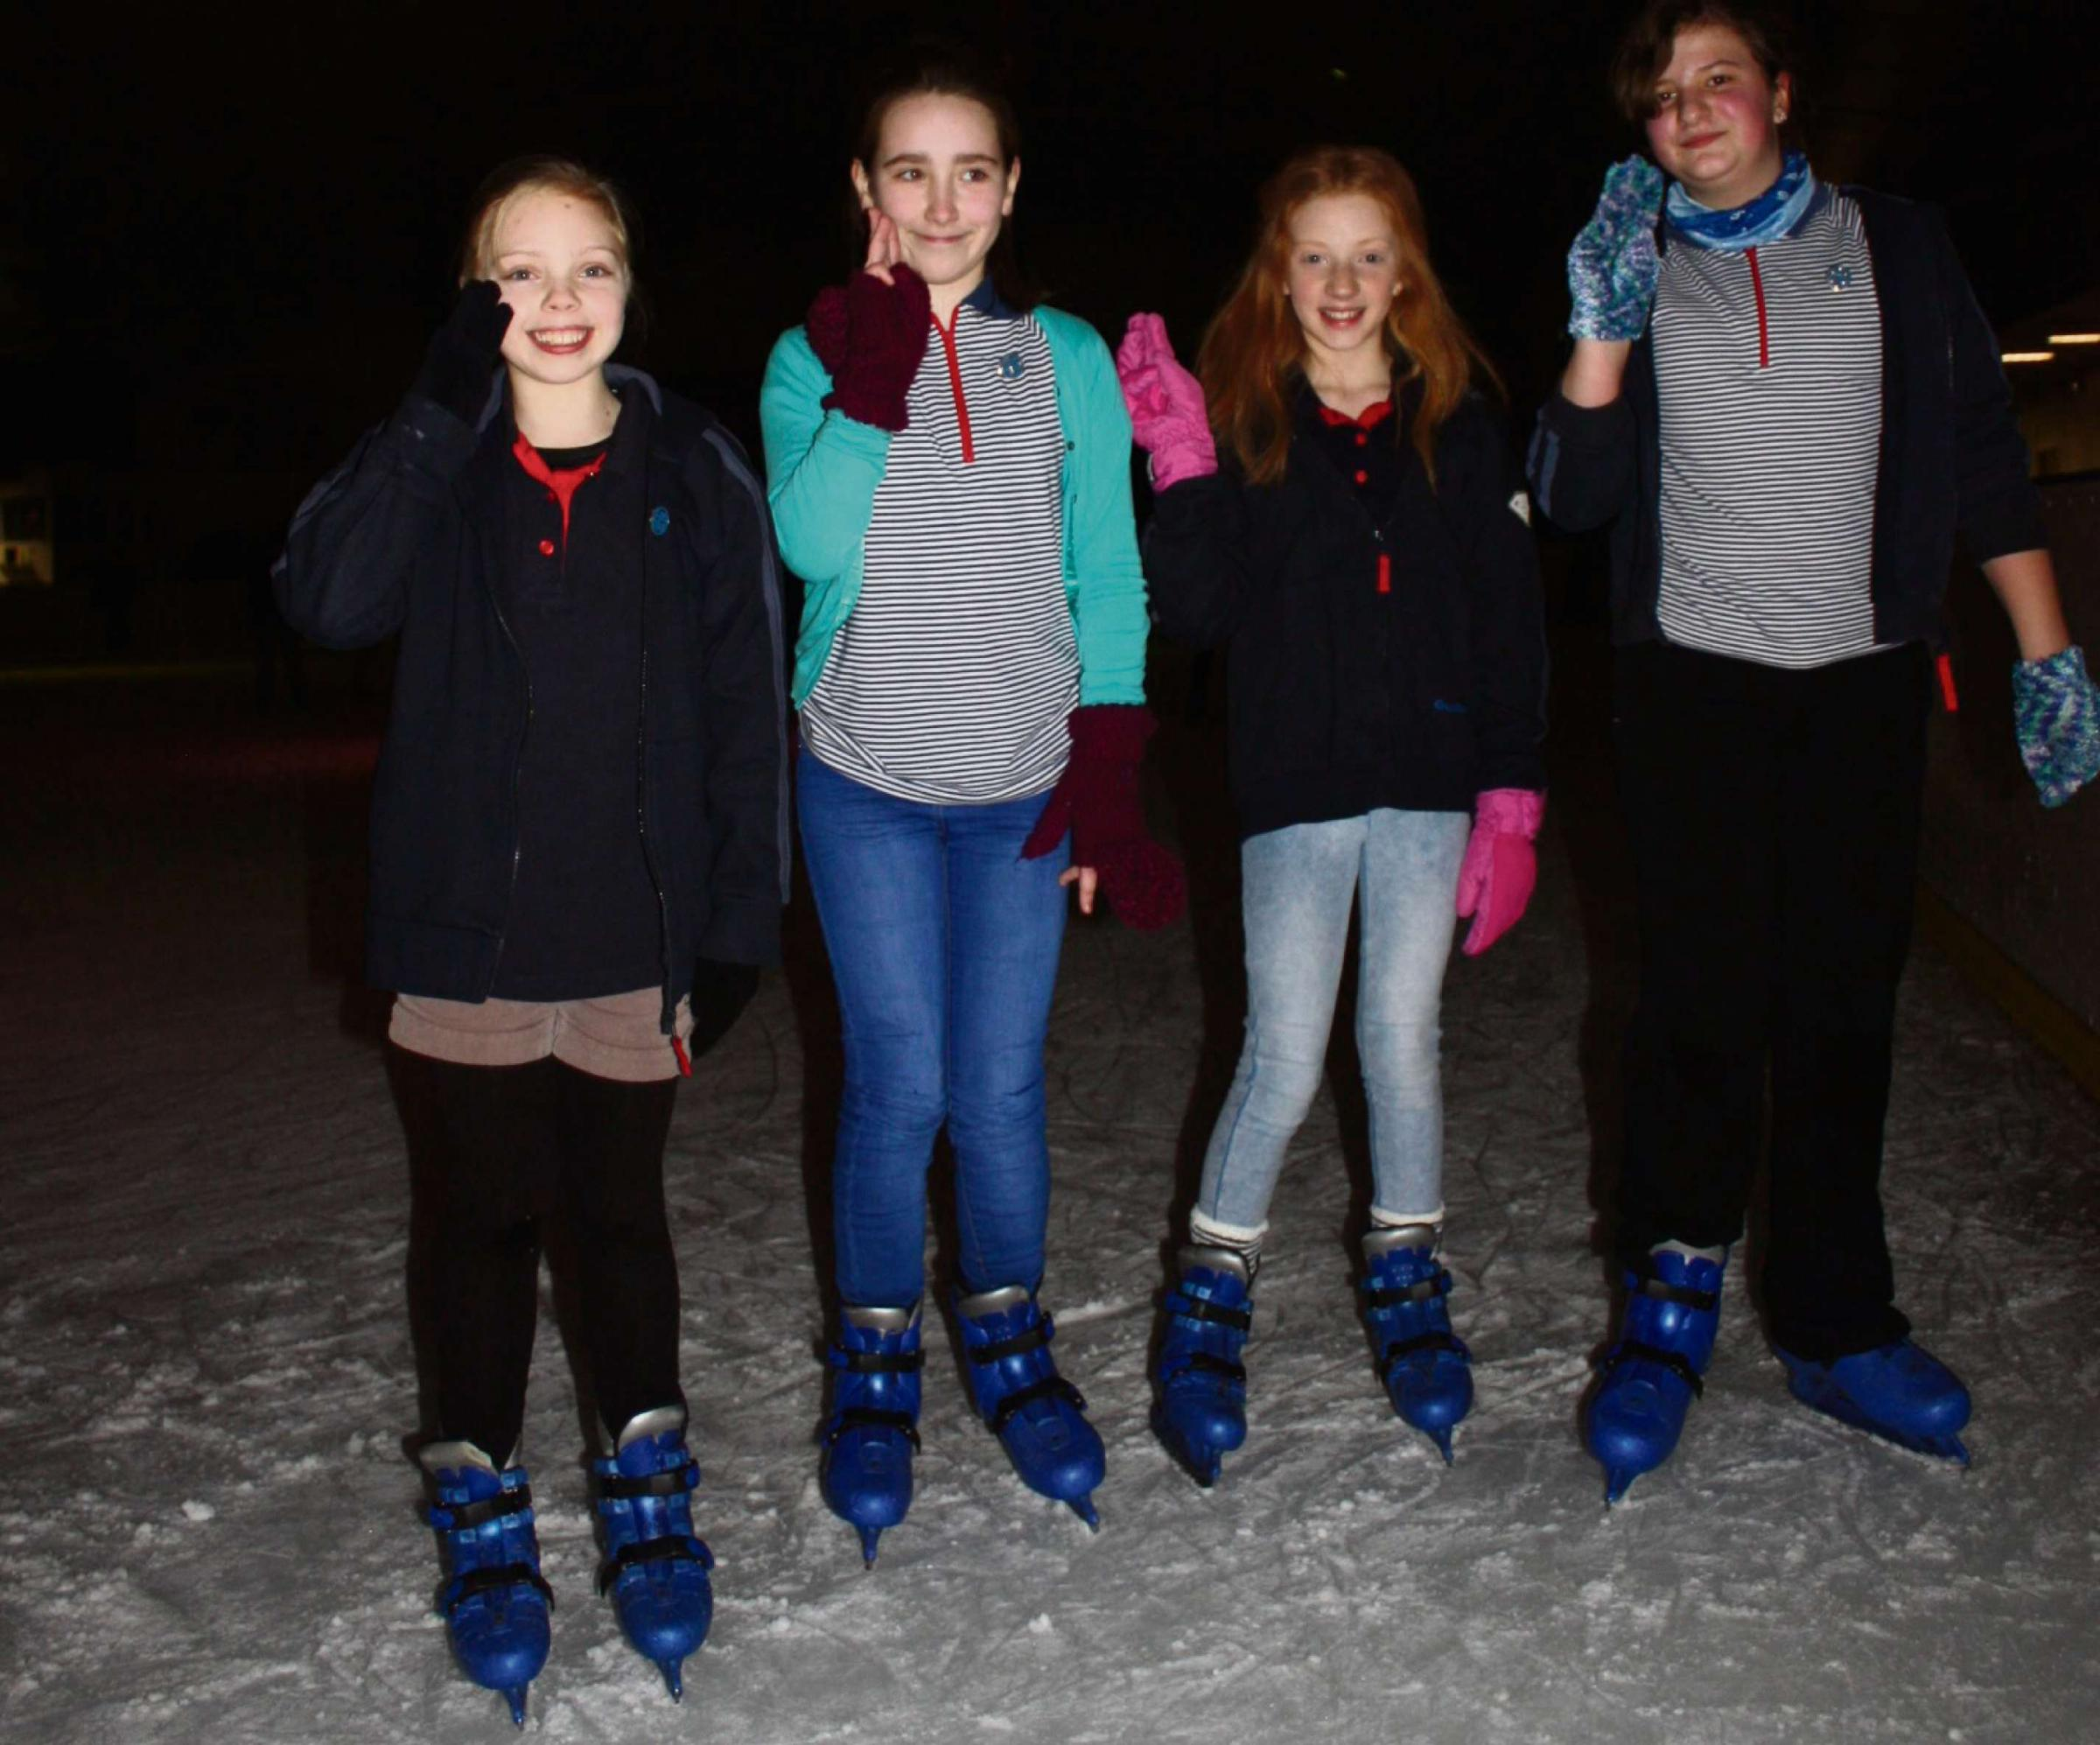 Ellie Taylor, Katie Daniel, and Ella and Molly Povey take their Guide promise on the ice. SP